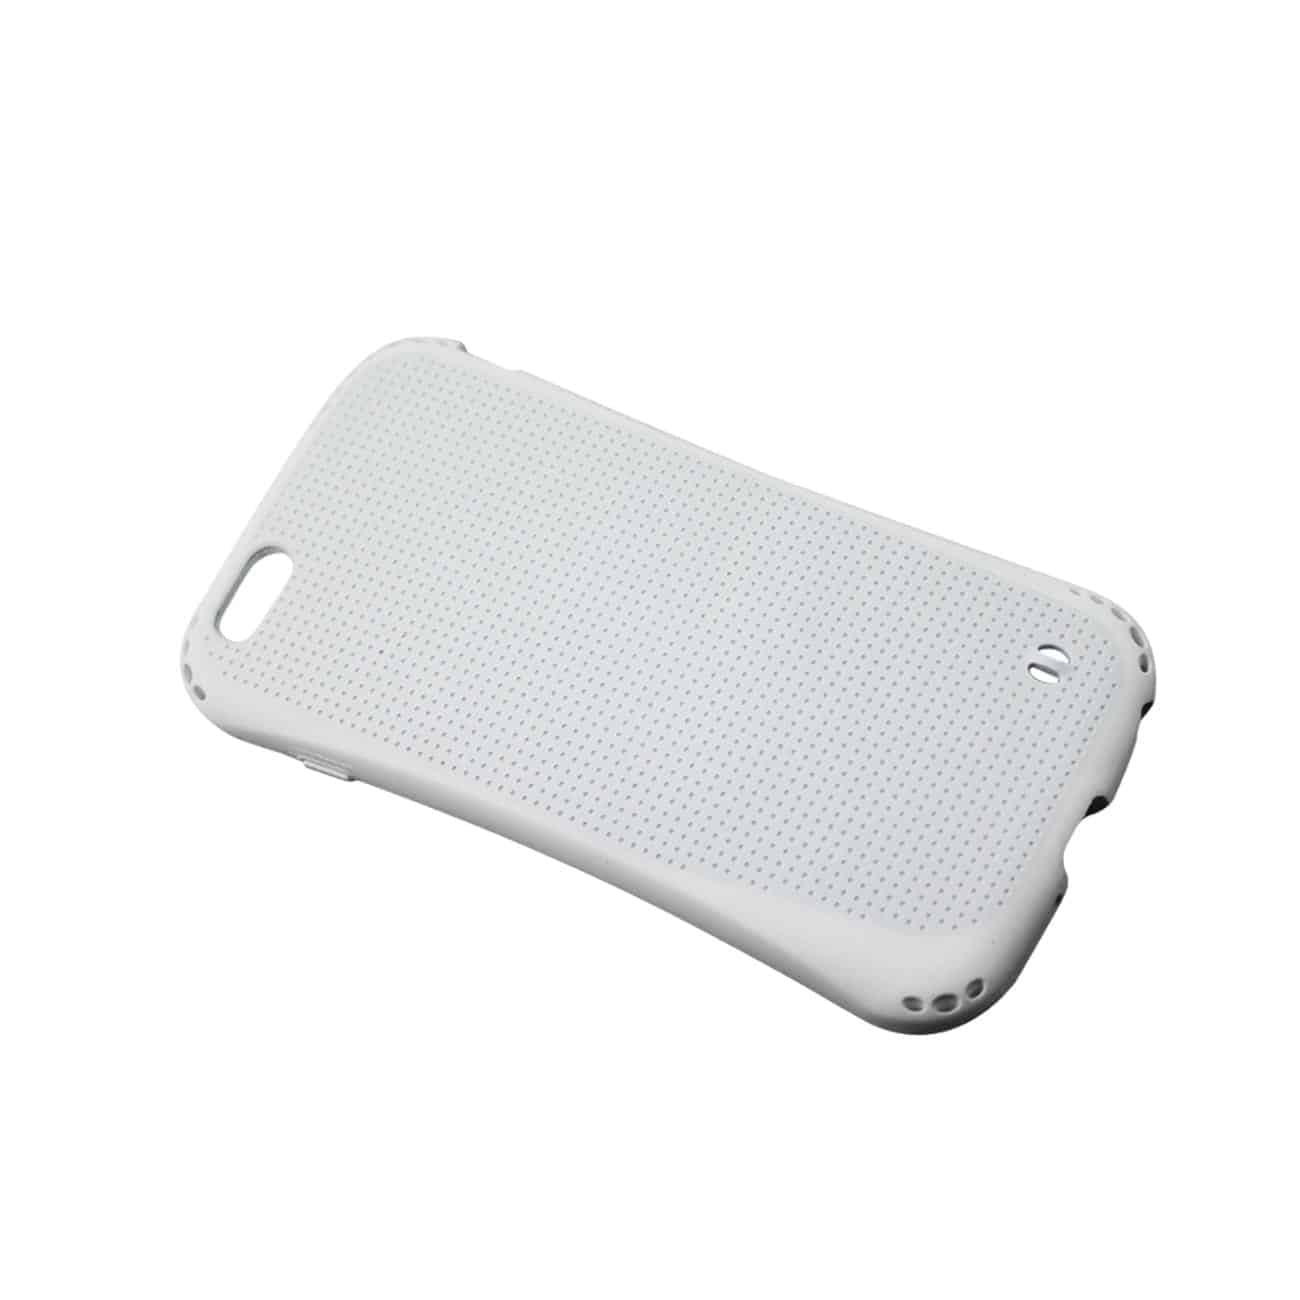 IPHONE 6 DROPPROOF AIR CUSHION CASE WITH CHAIN HOLE IN WHITE